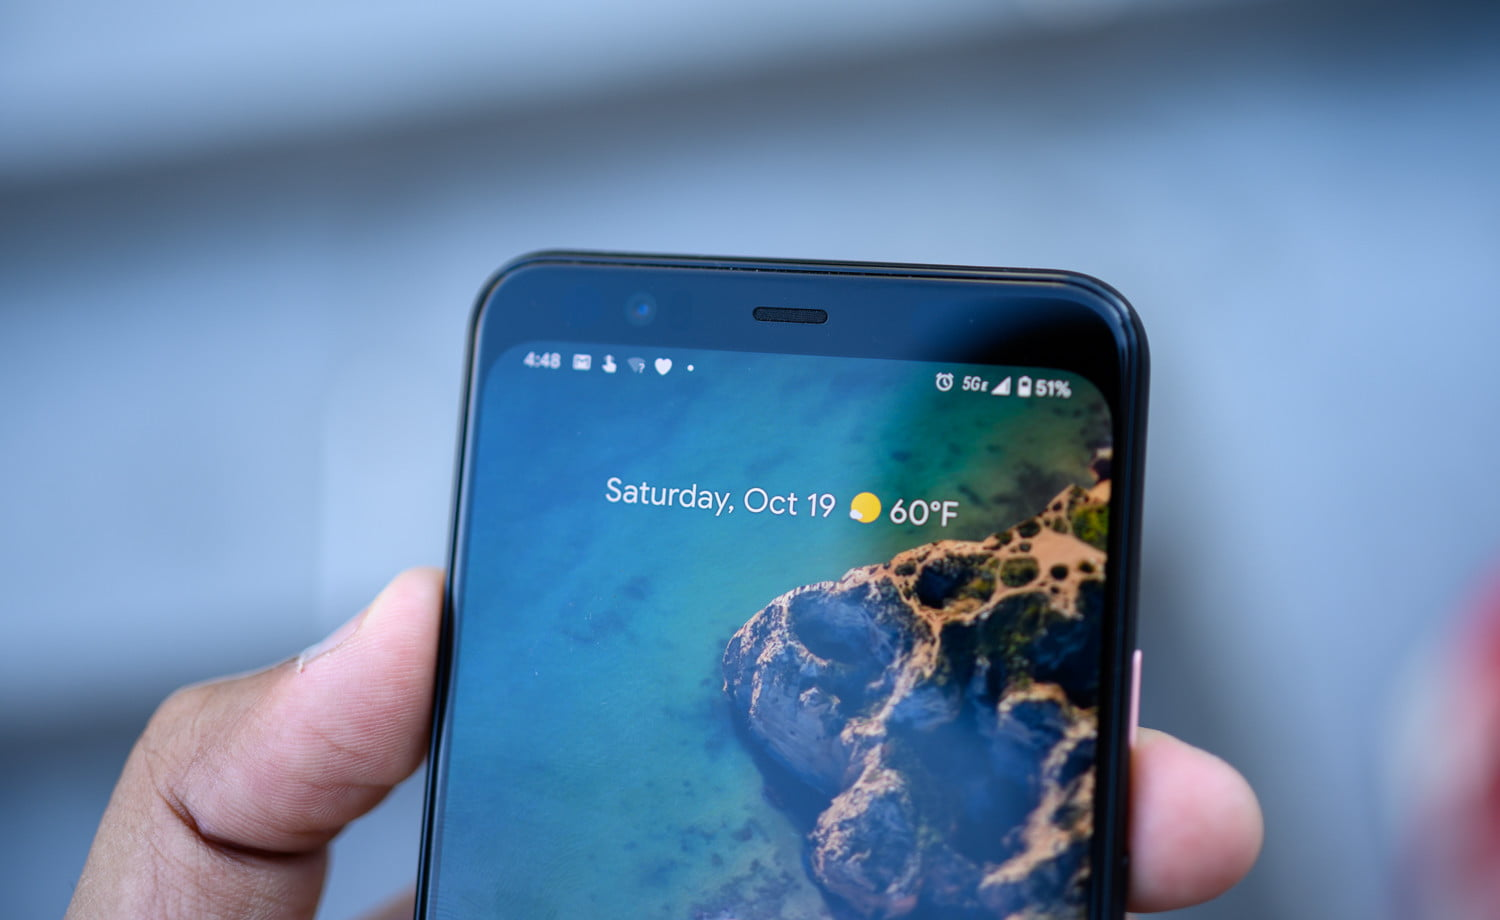 I asked 10 U.S. banks when they plan to support Google Pixel 4's Face Unlock